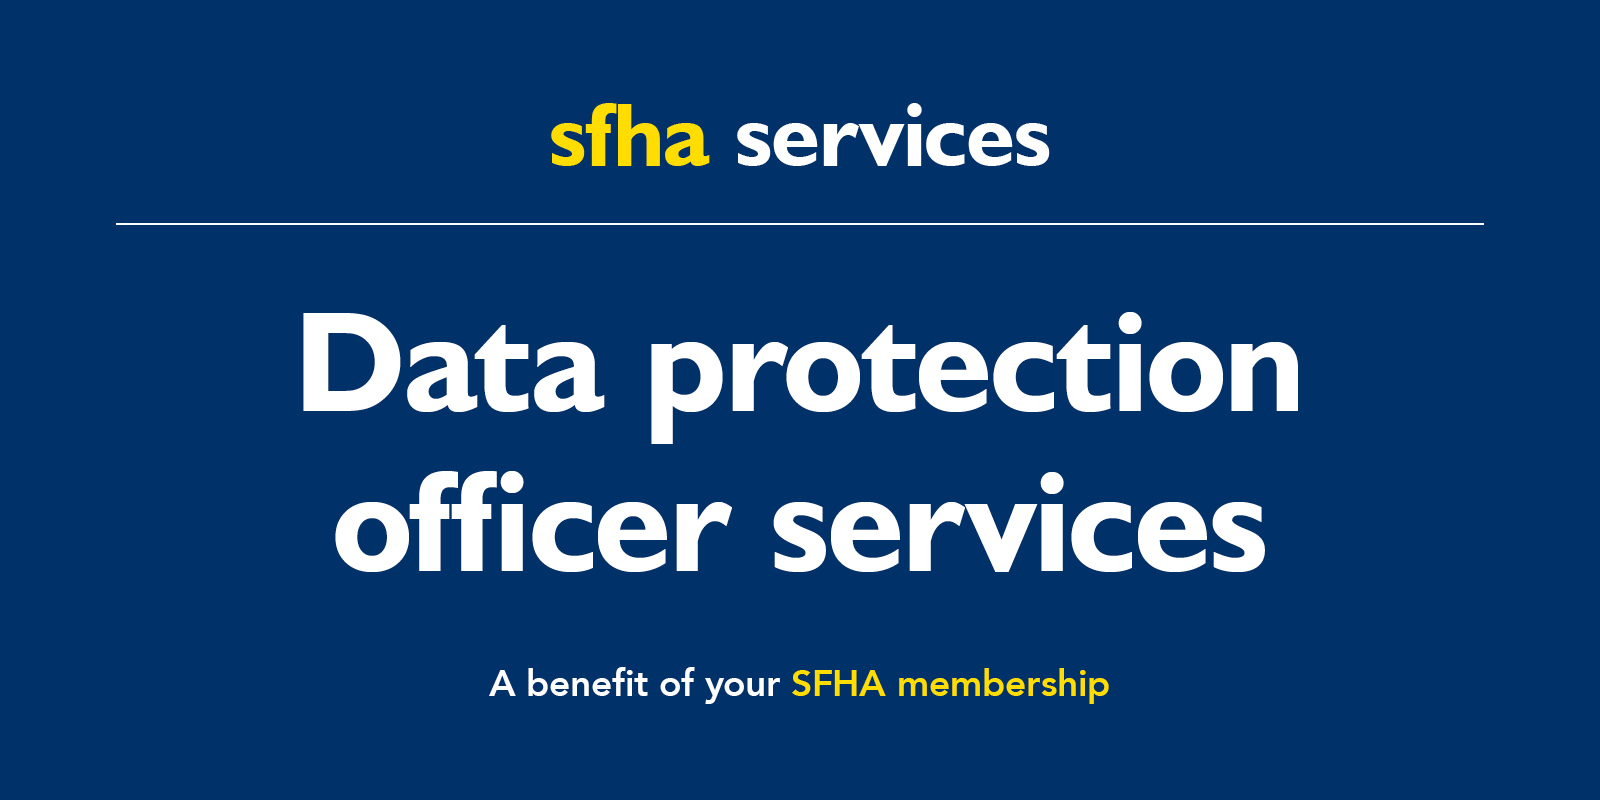 Data protection officer service – a benefit of your SFHA membership